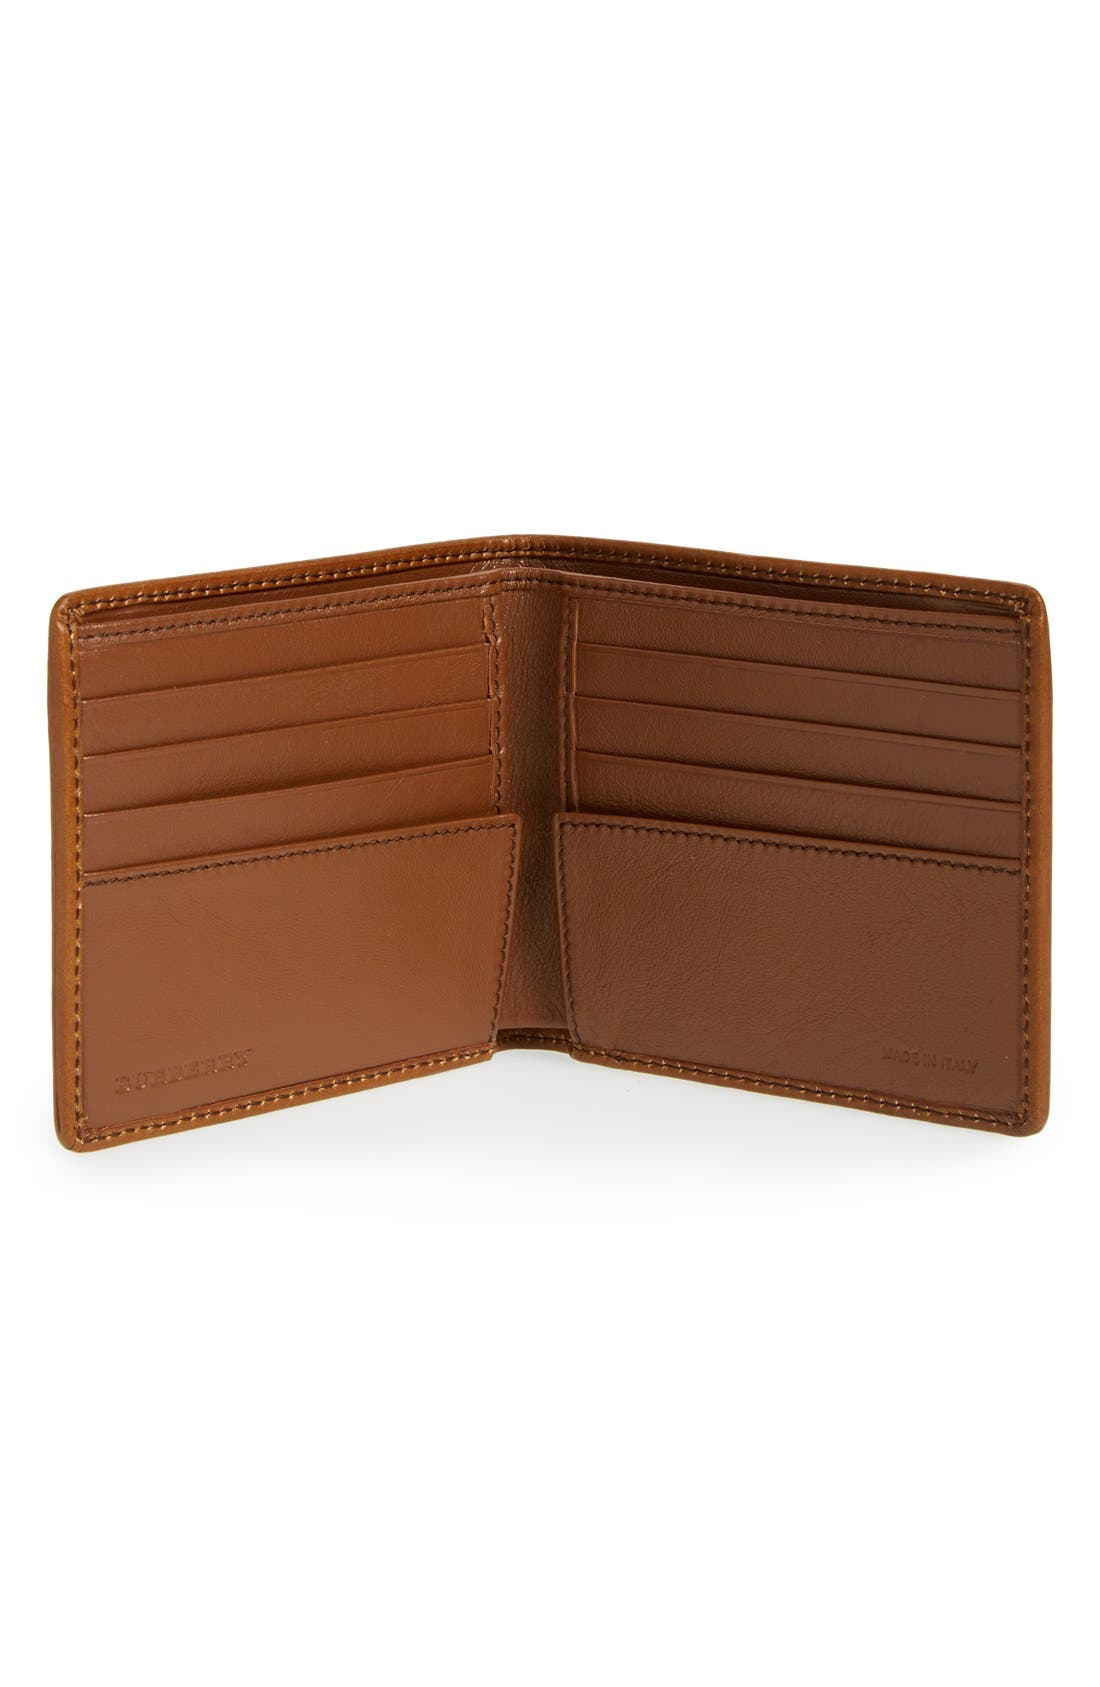 Horseferry Check Billfold Wallet,                             Alternate thumbnail 2, color,                             Tan